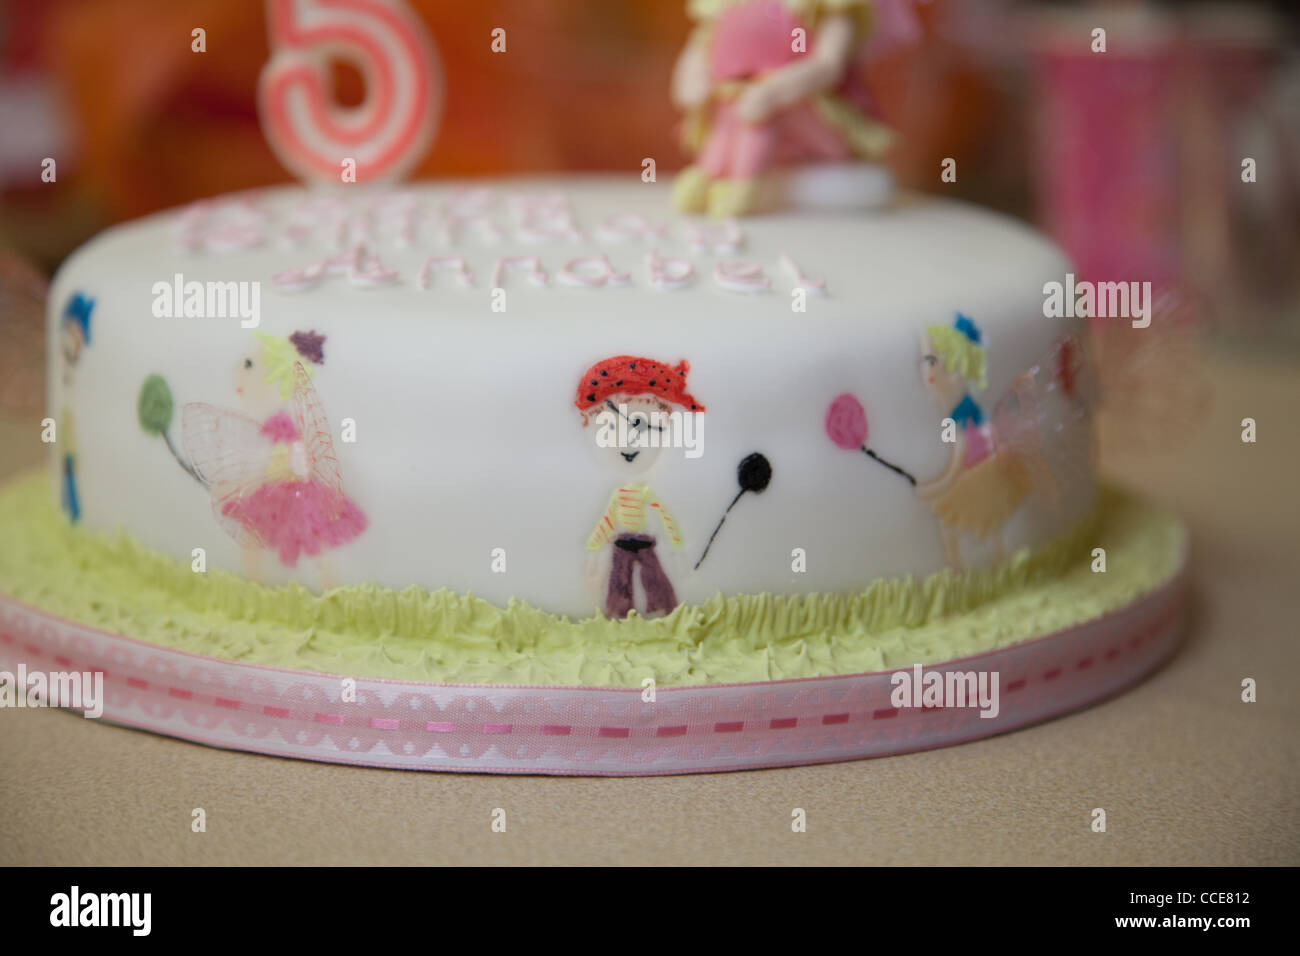 Miraculous Birthday Cake For A Five Year Olds Fairy And Pirate Party Stock Birthday Cards Printable Inklcafe Filternl